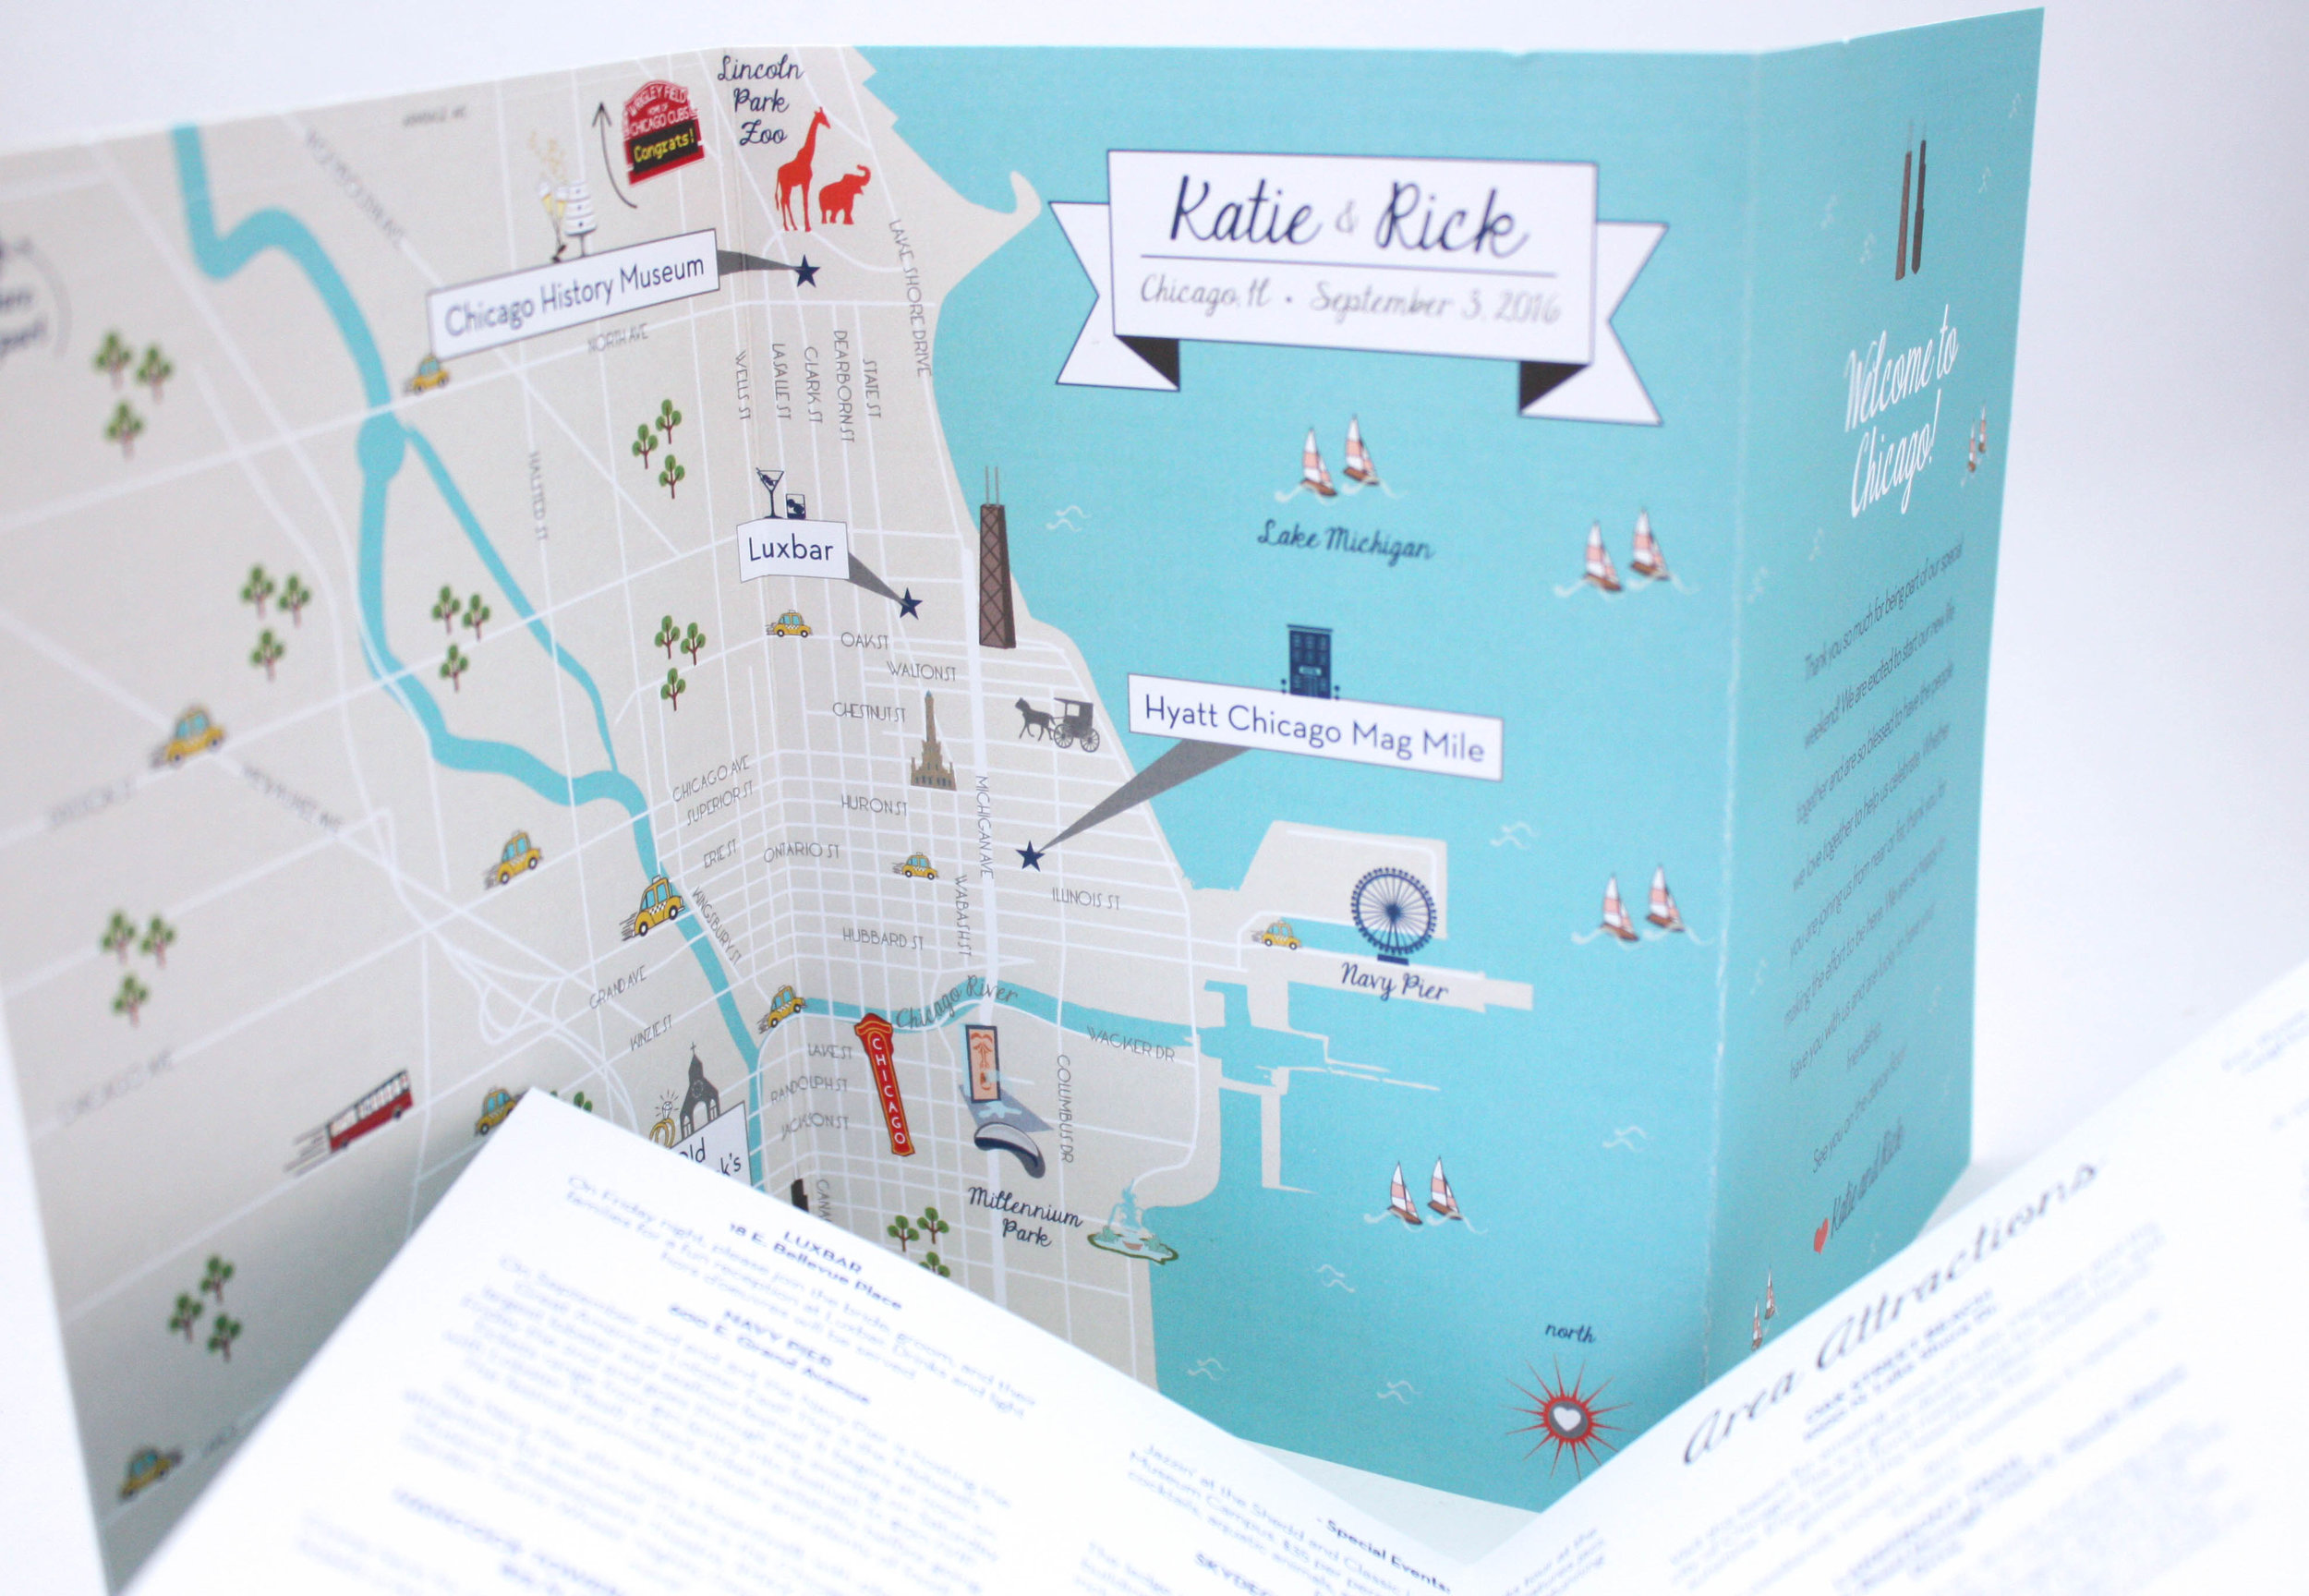 This detailed wedding map listed area attractions and highlighted the wedding weekend festivities.